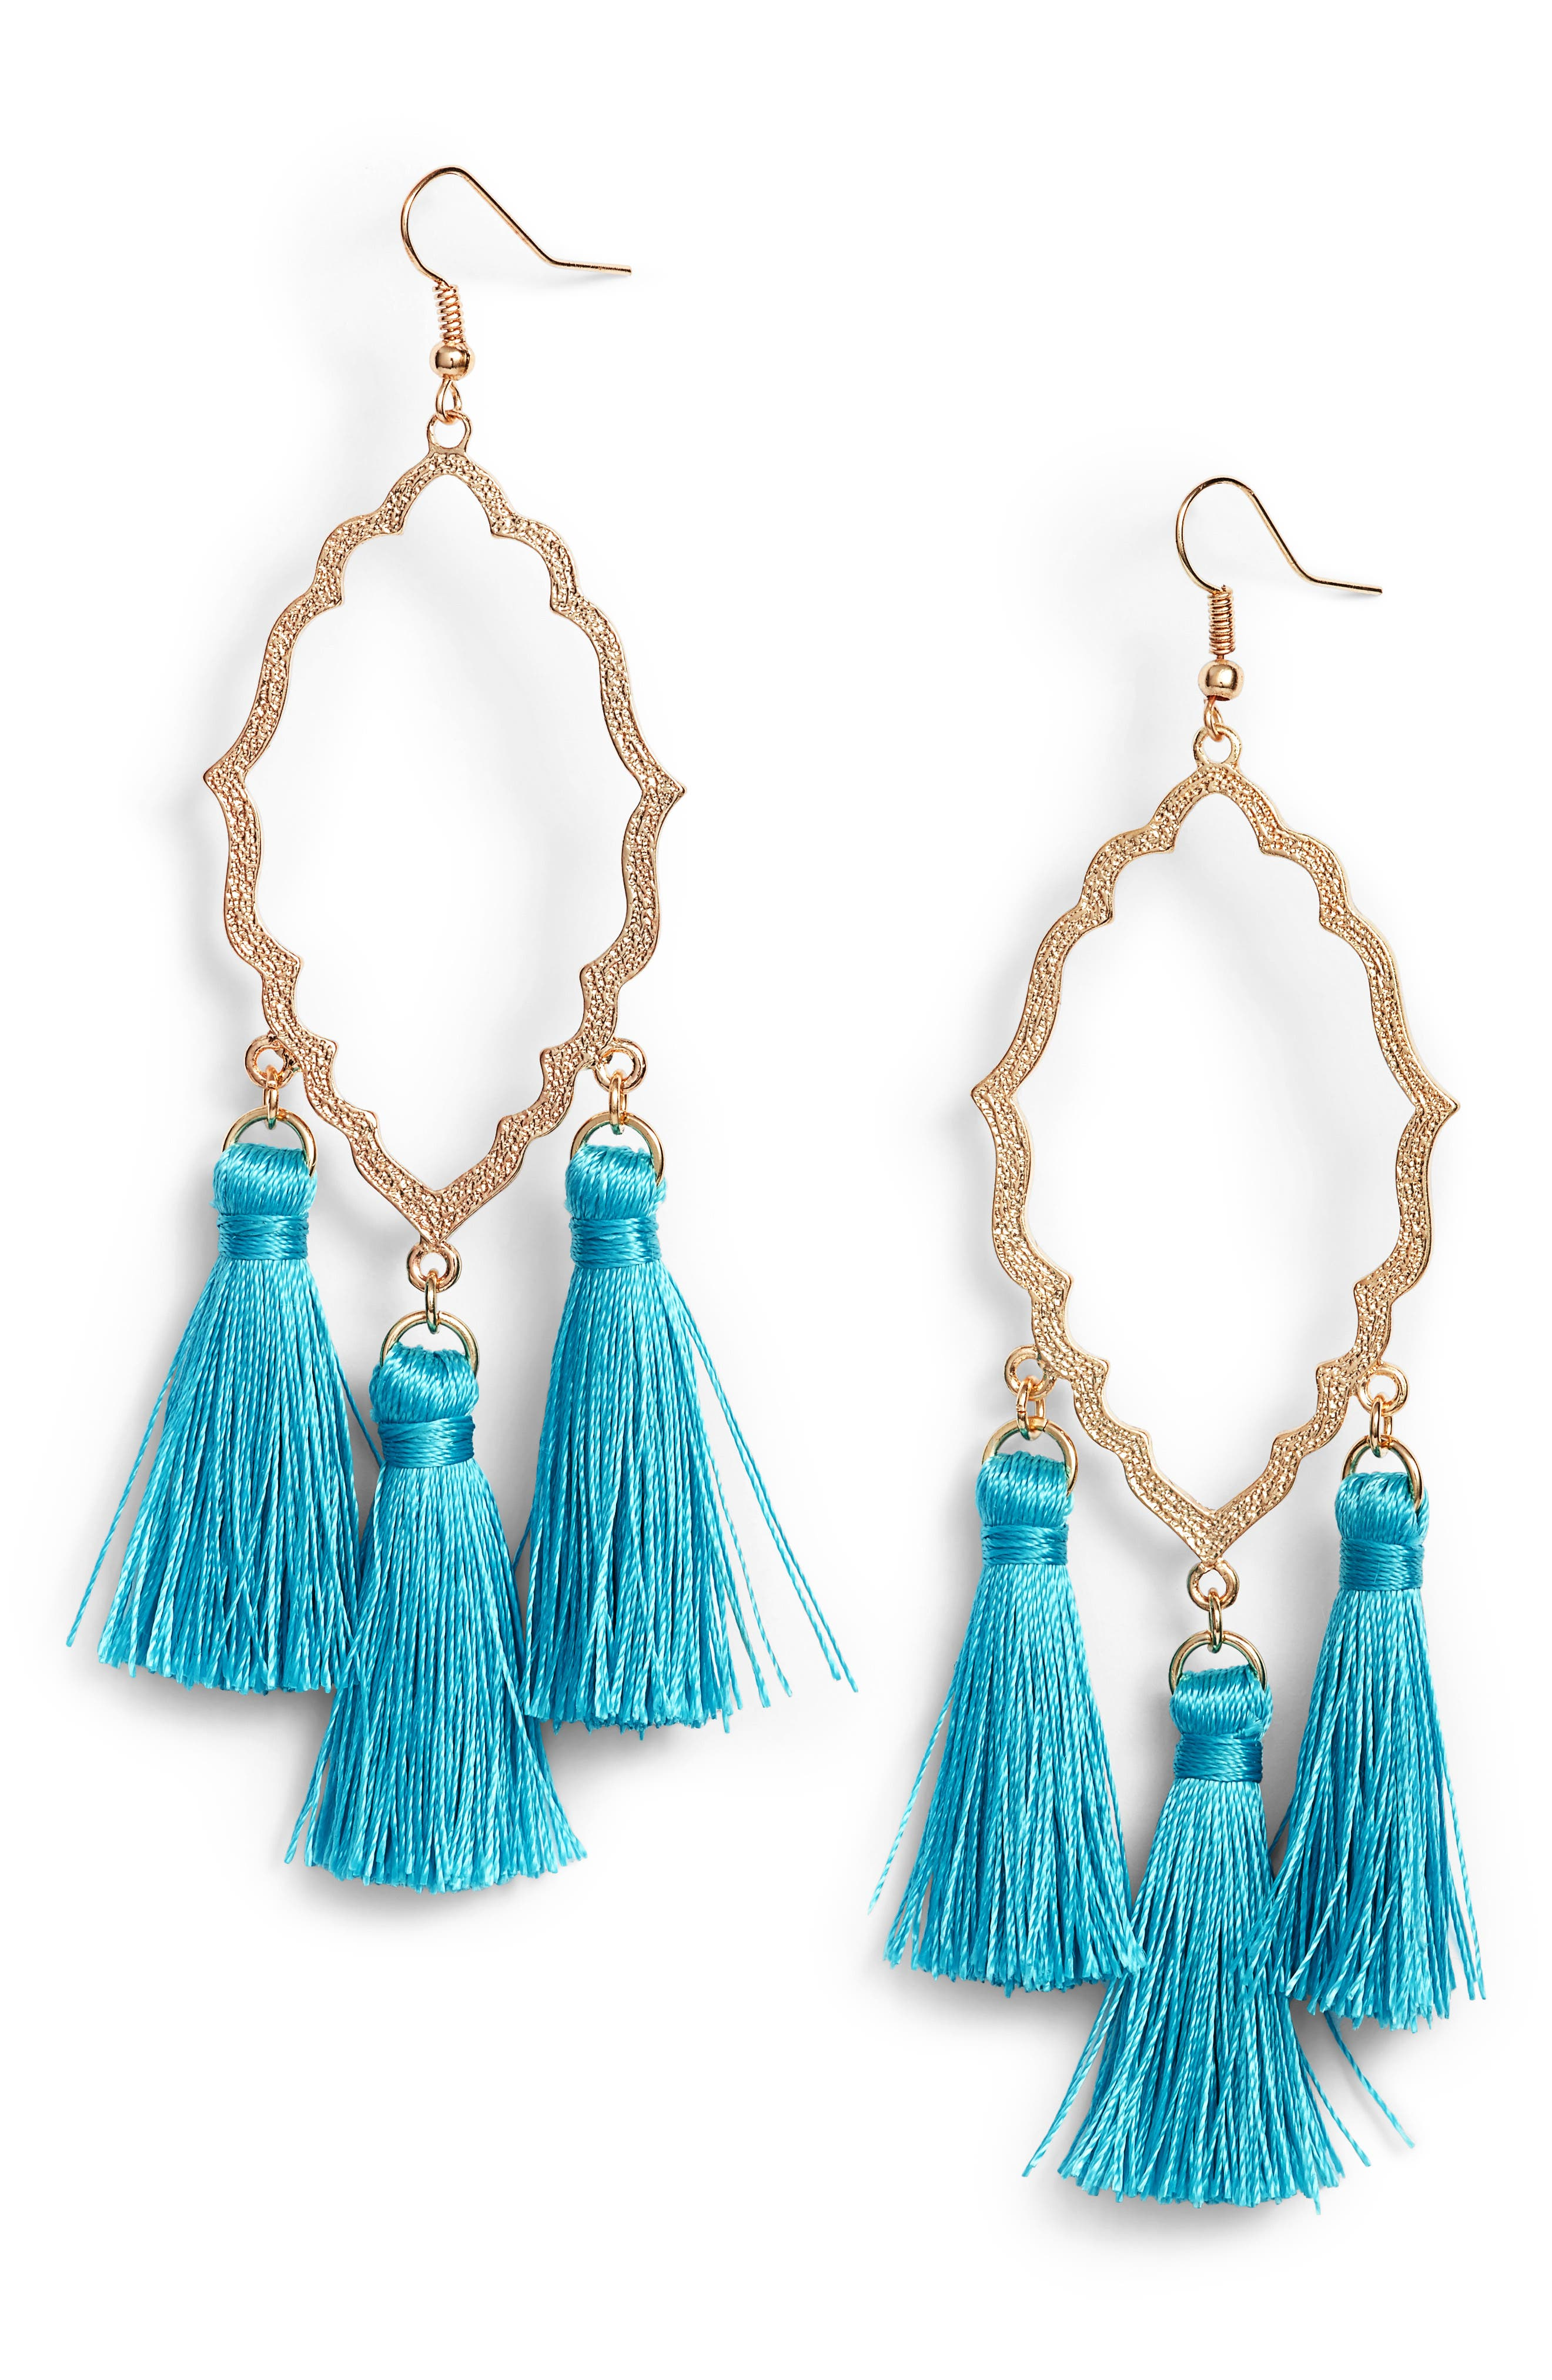 Medallion Tassel Earrings,                         Main,                         color, Teal